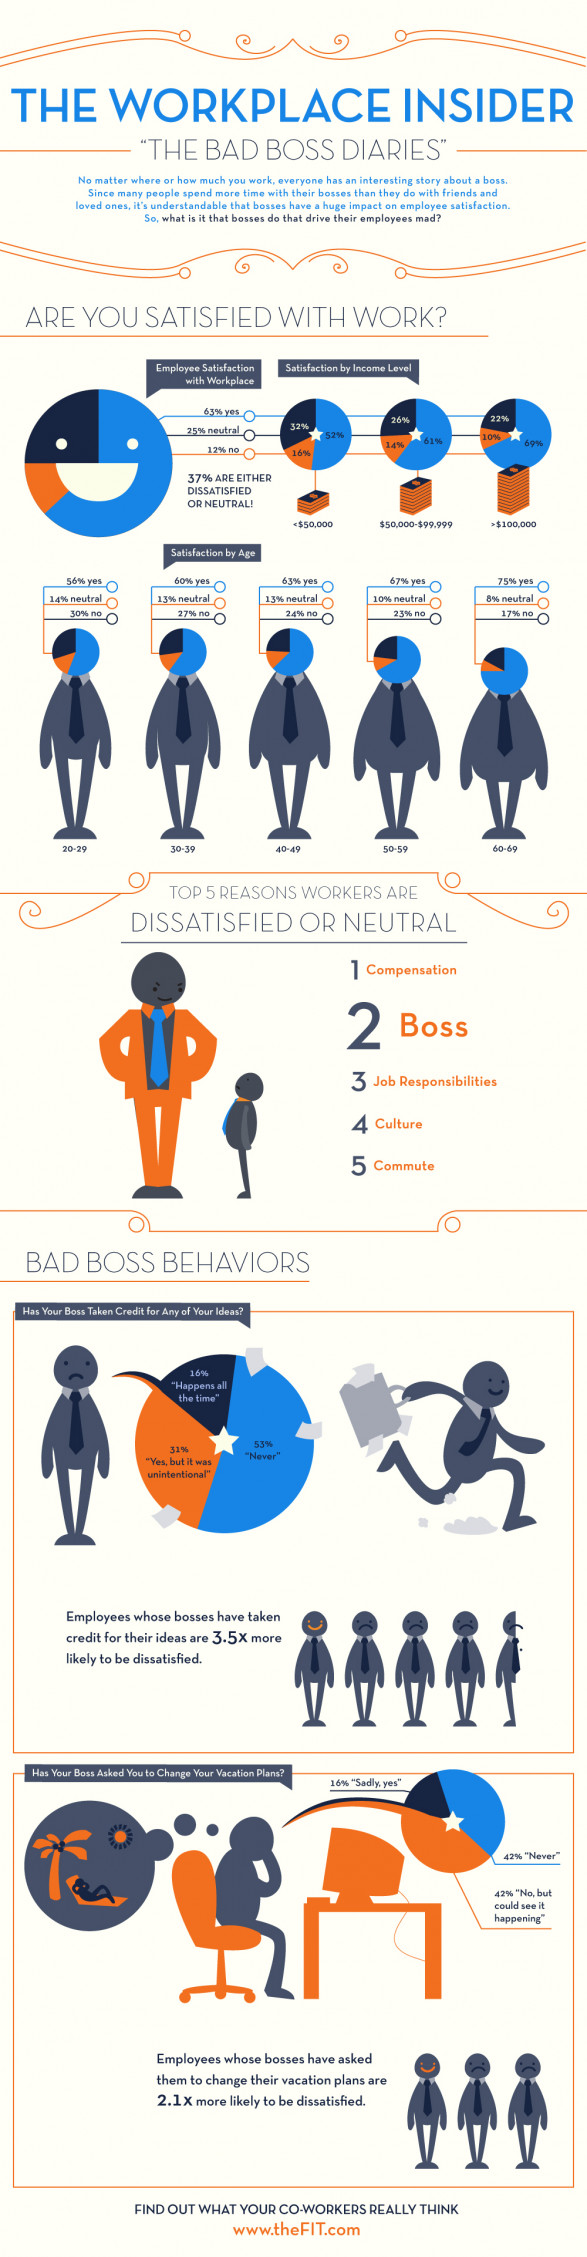 The Workplace Insider: The Bad Boss Diaries